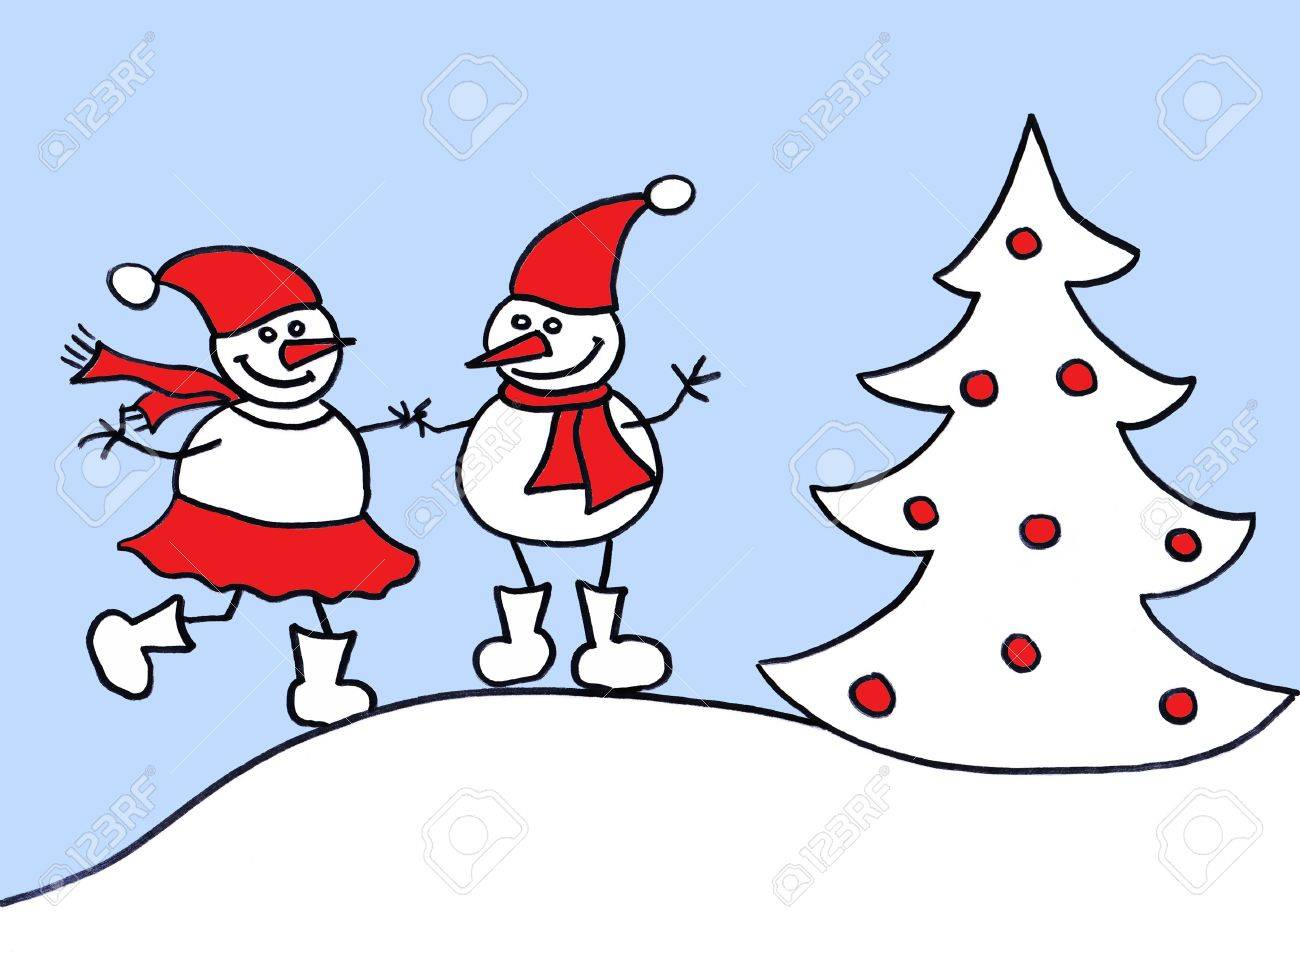 Child's drawing of couple snowman and snowwoman Stock Photo - 10599782